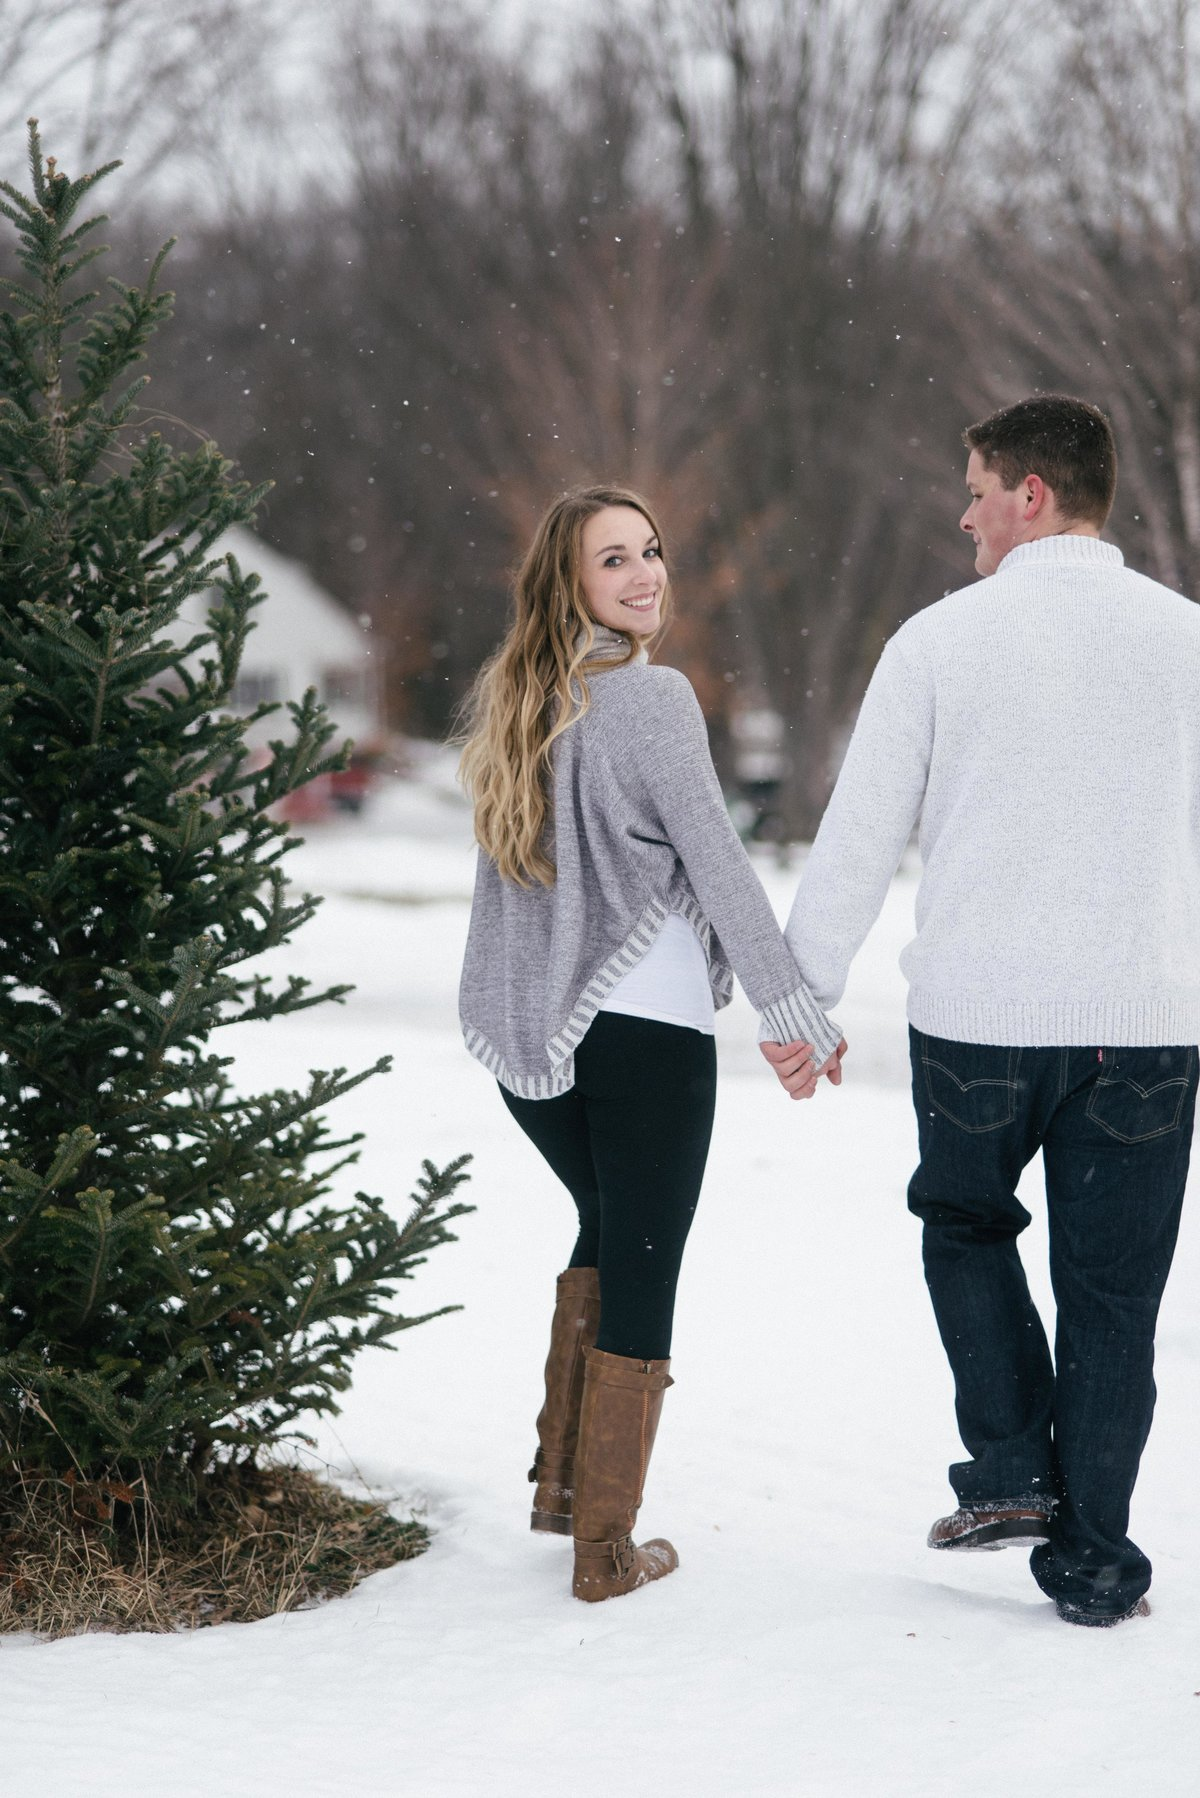 Lexie_Roger_Winter_Engagement_4276